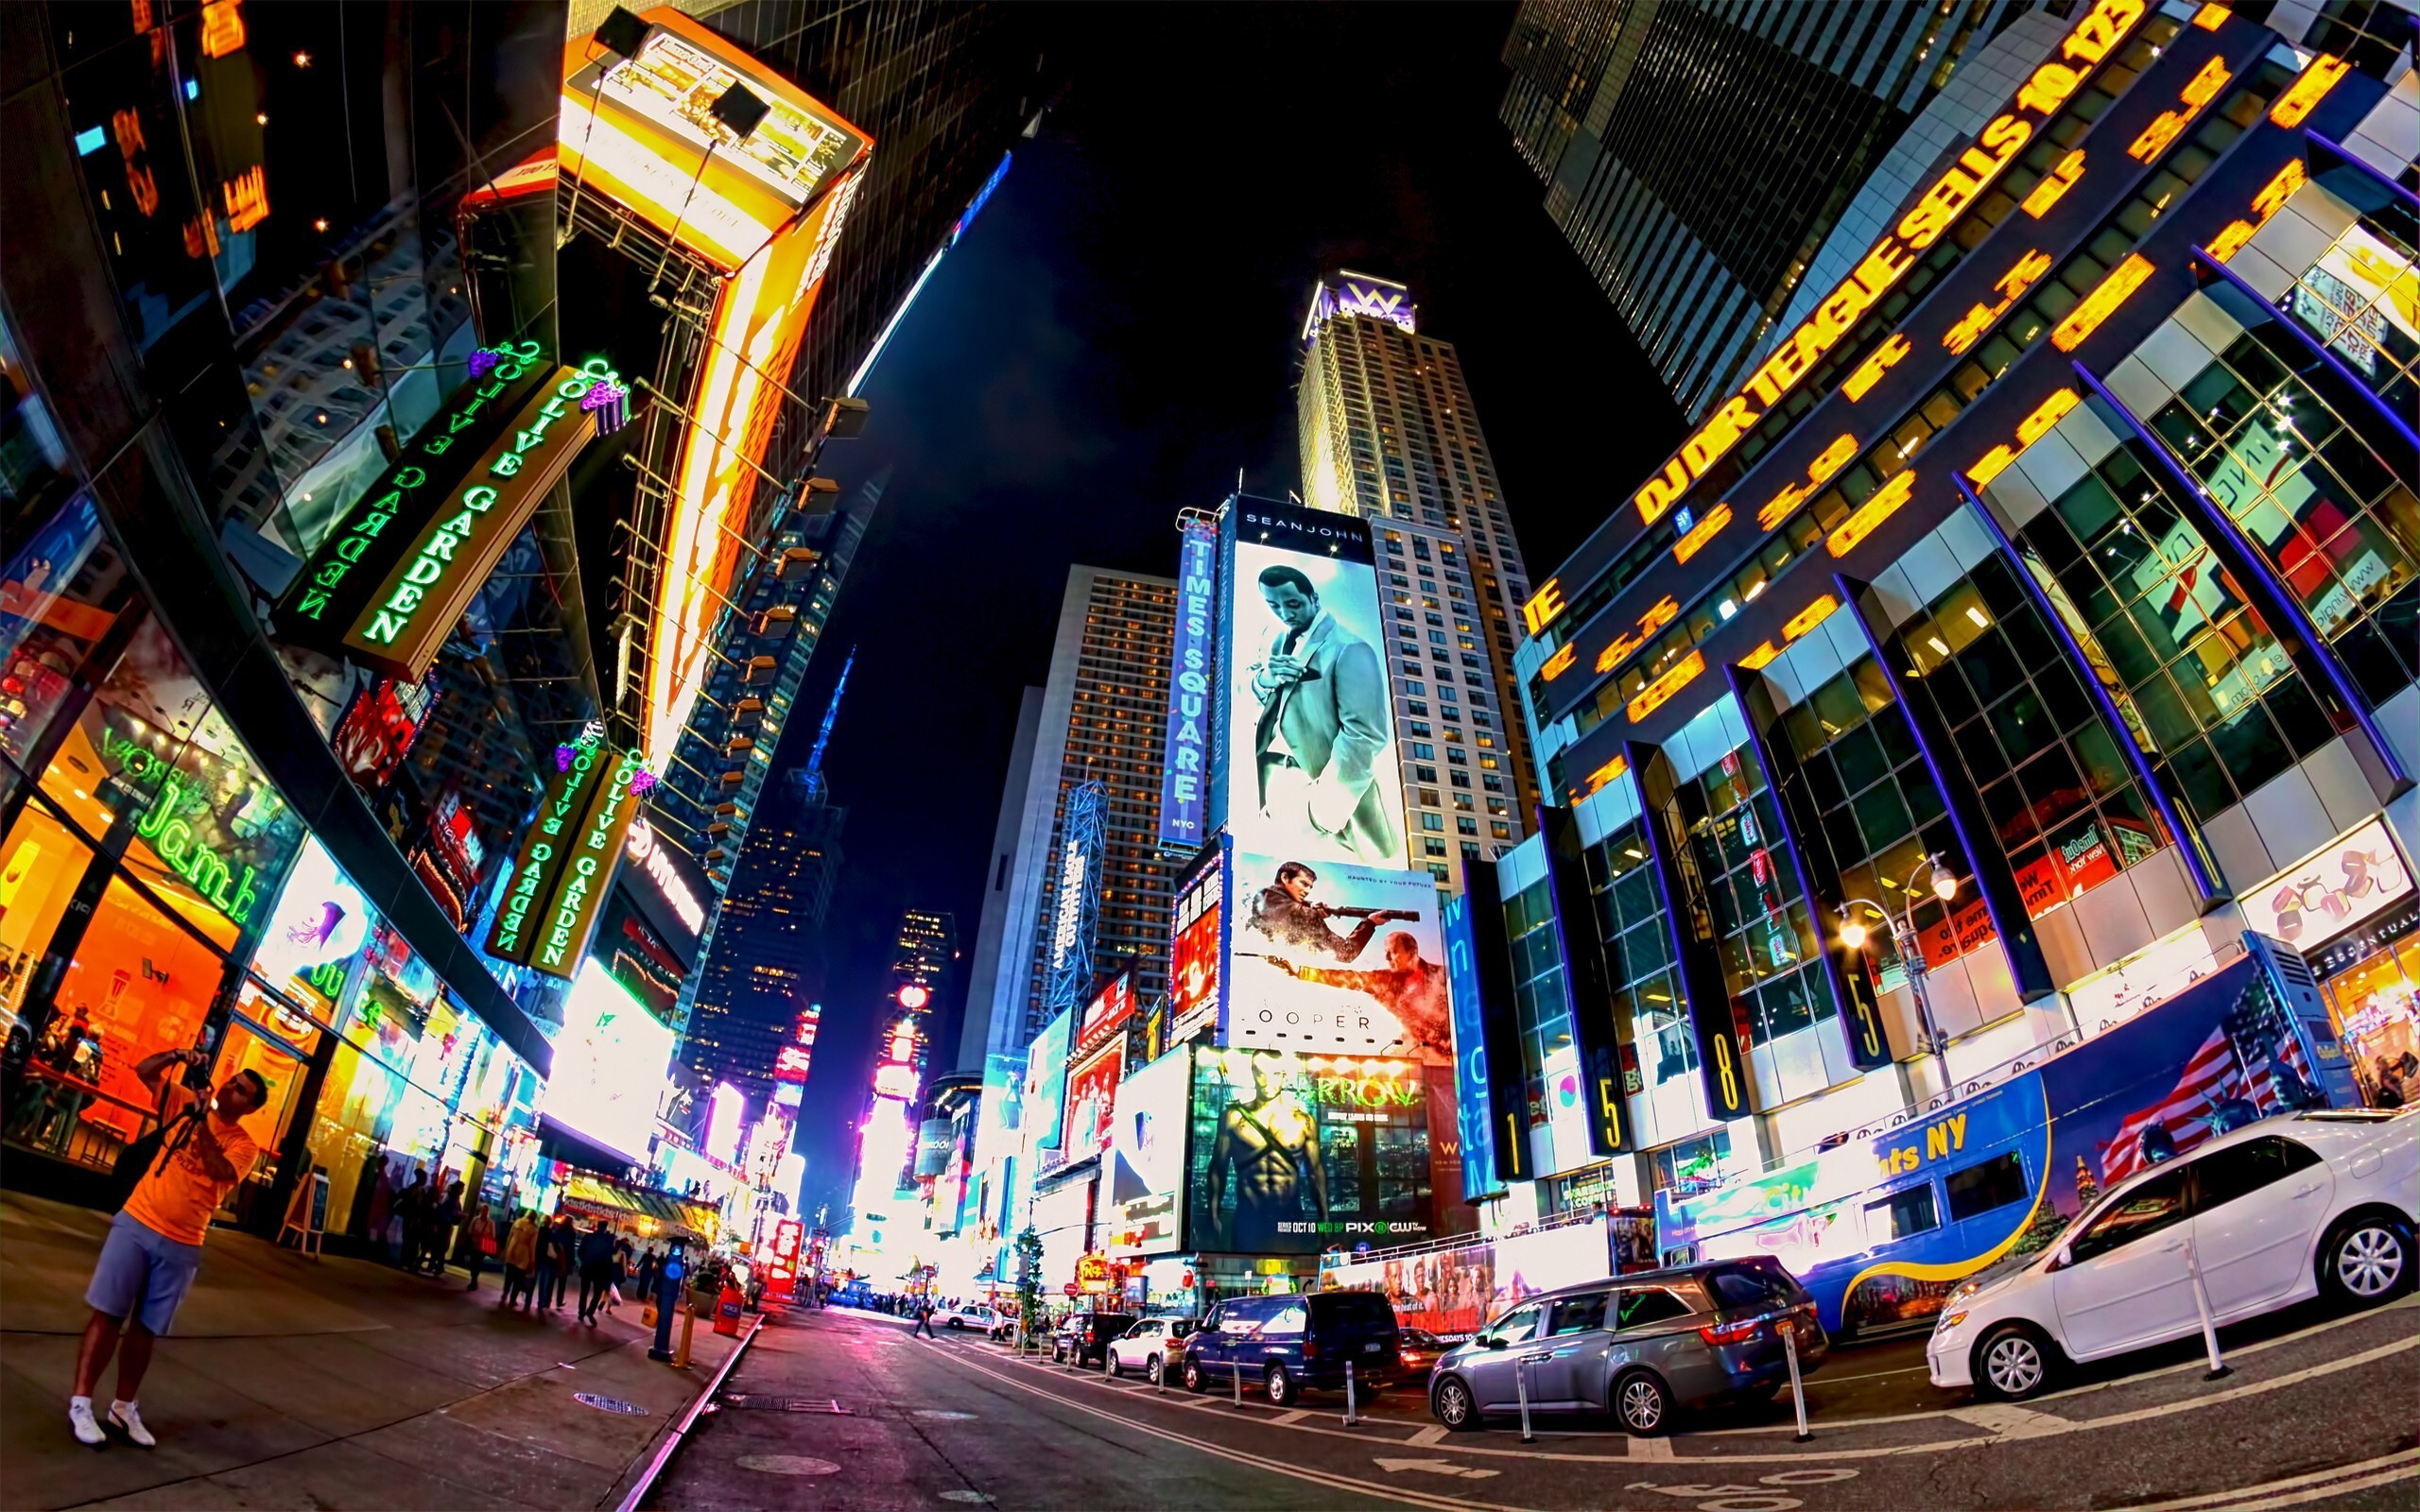 Times square new york city united states hd wallpaper hd wallpapers - Times square background ...